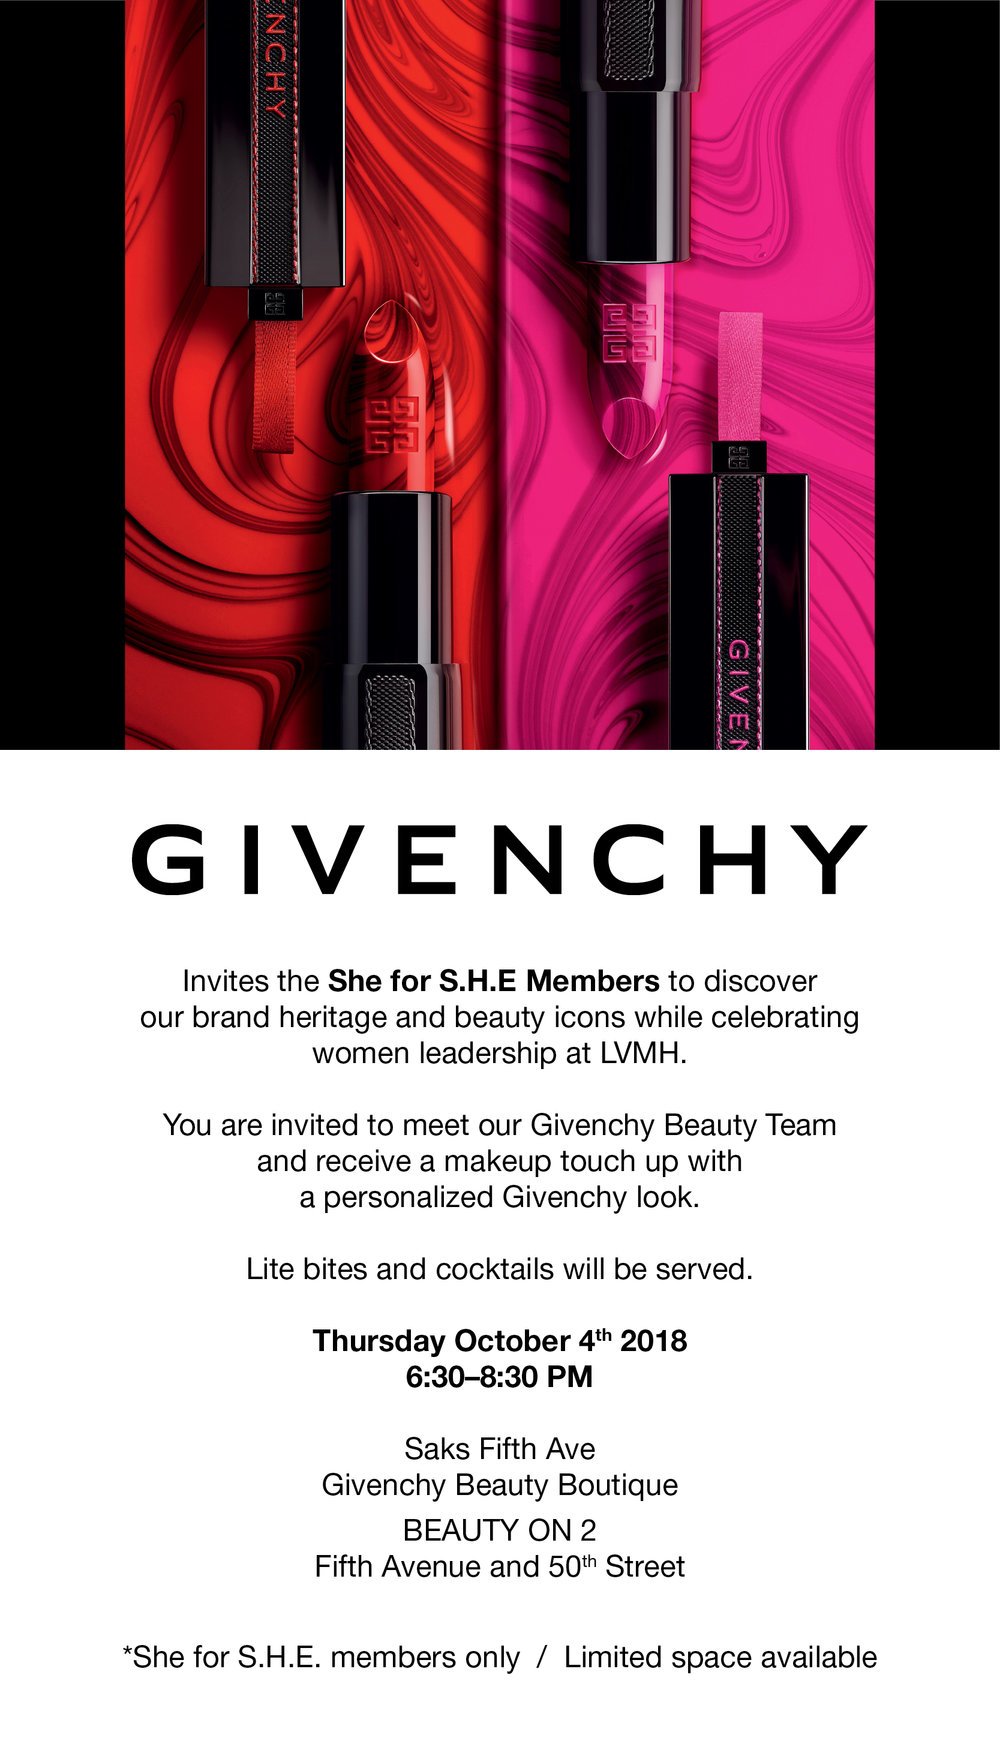 Givenchy-she4she-event-newyork